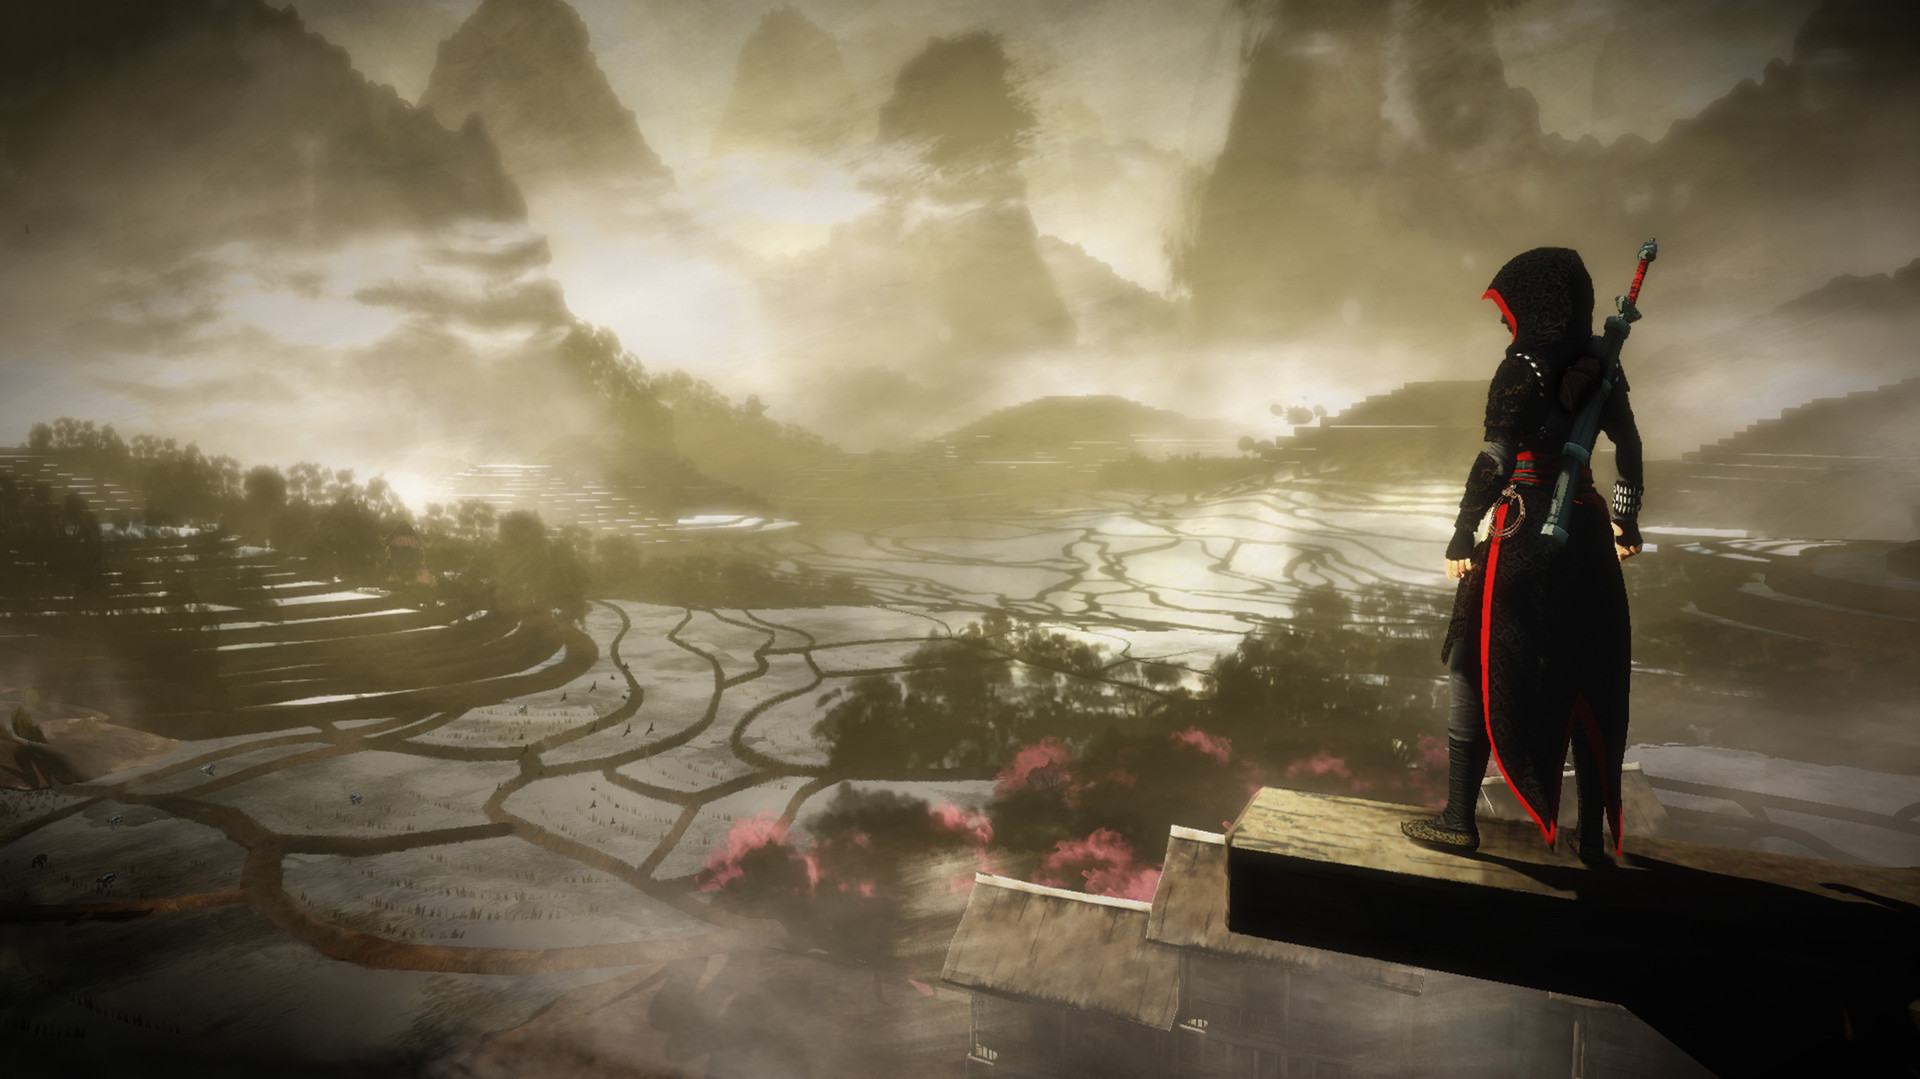 Assassin's Creed Chronicles: China Review: The Art of War